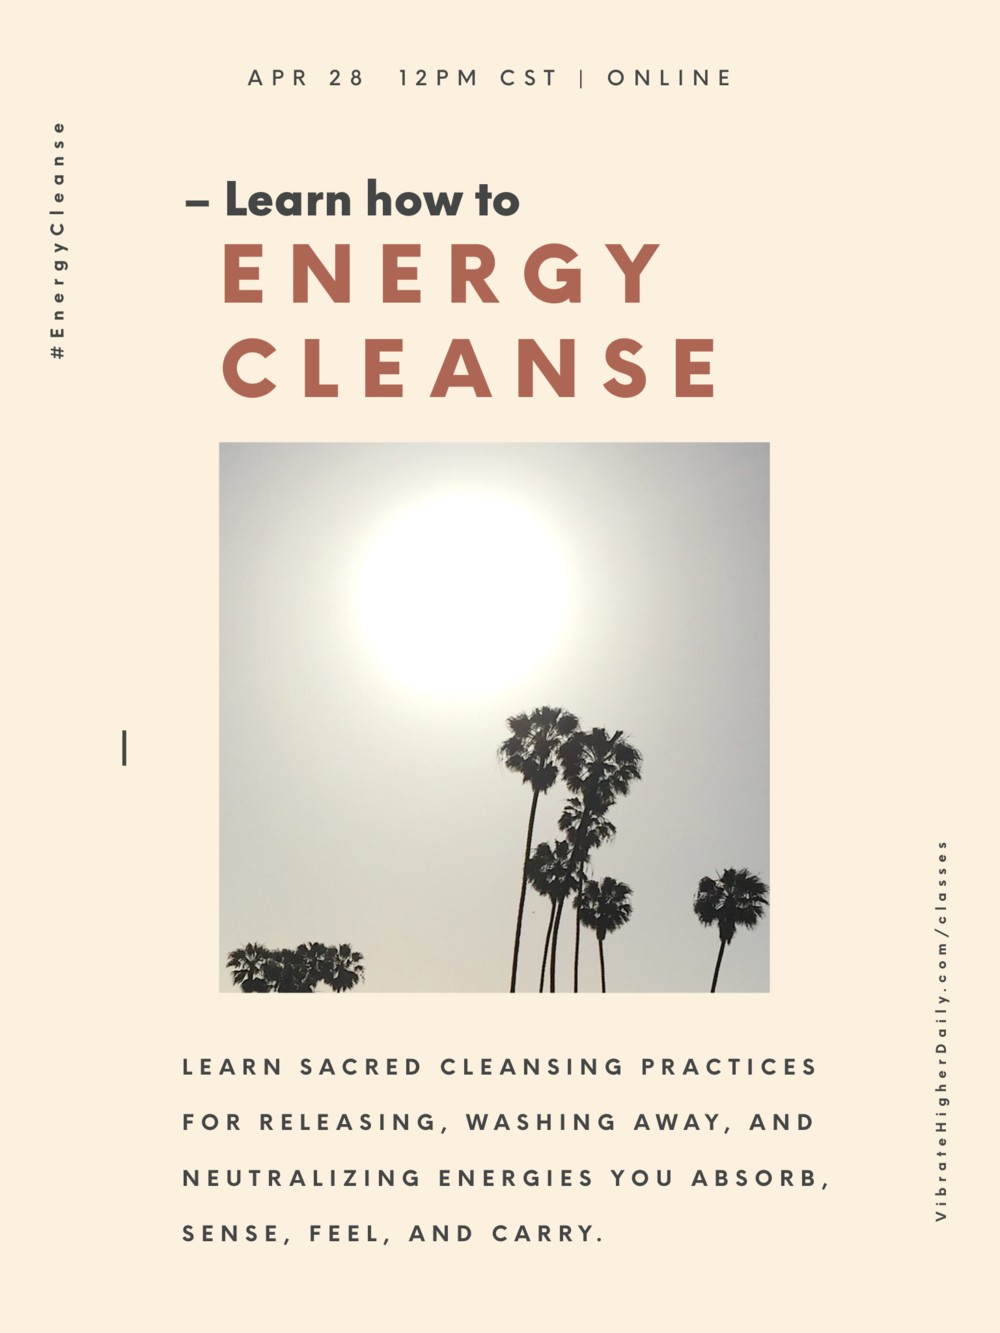 Energy Cleanse   - Learn sacred cleansing practices for releasing, washing away, and neutralizing energies you absorb, sense, feel, and carry.